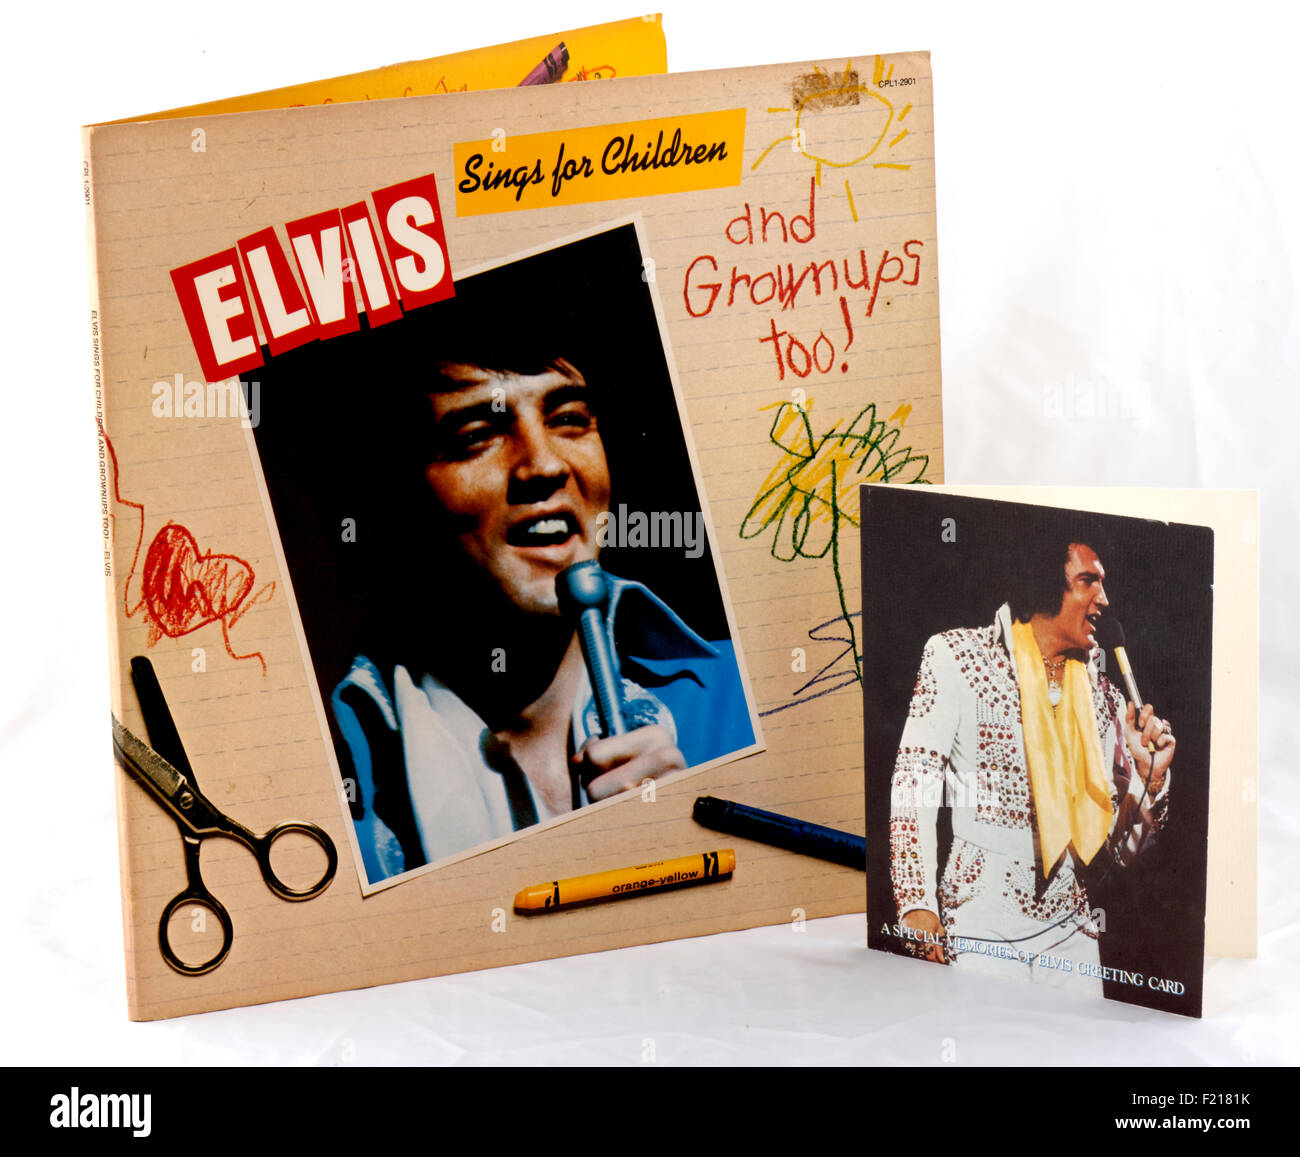 """Elvis Presley vinyl record album """"Elvis Sings for Children and Grown Ups Too"""" gatefold sleeve with included picture Stock Photo"""